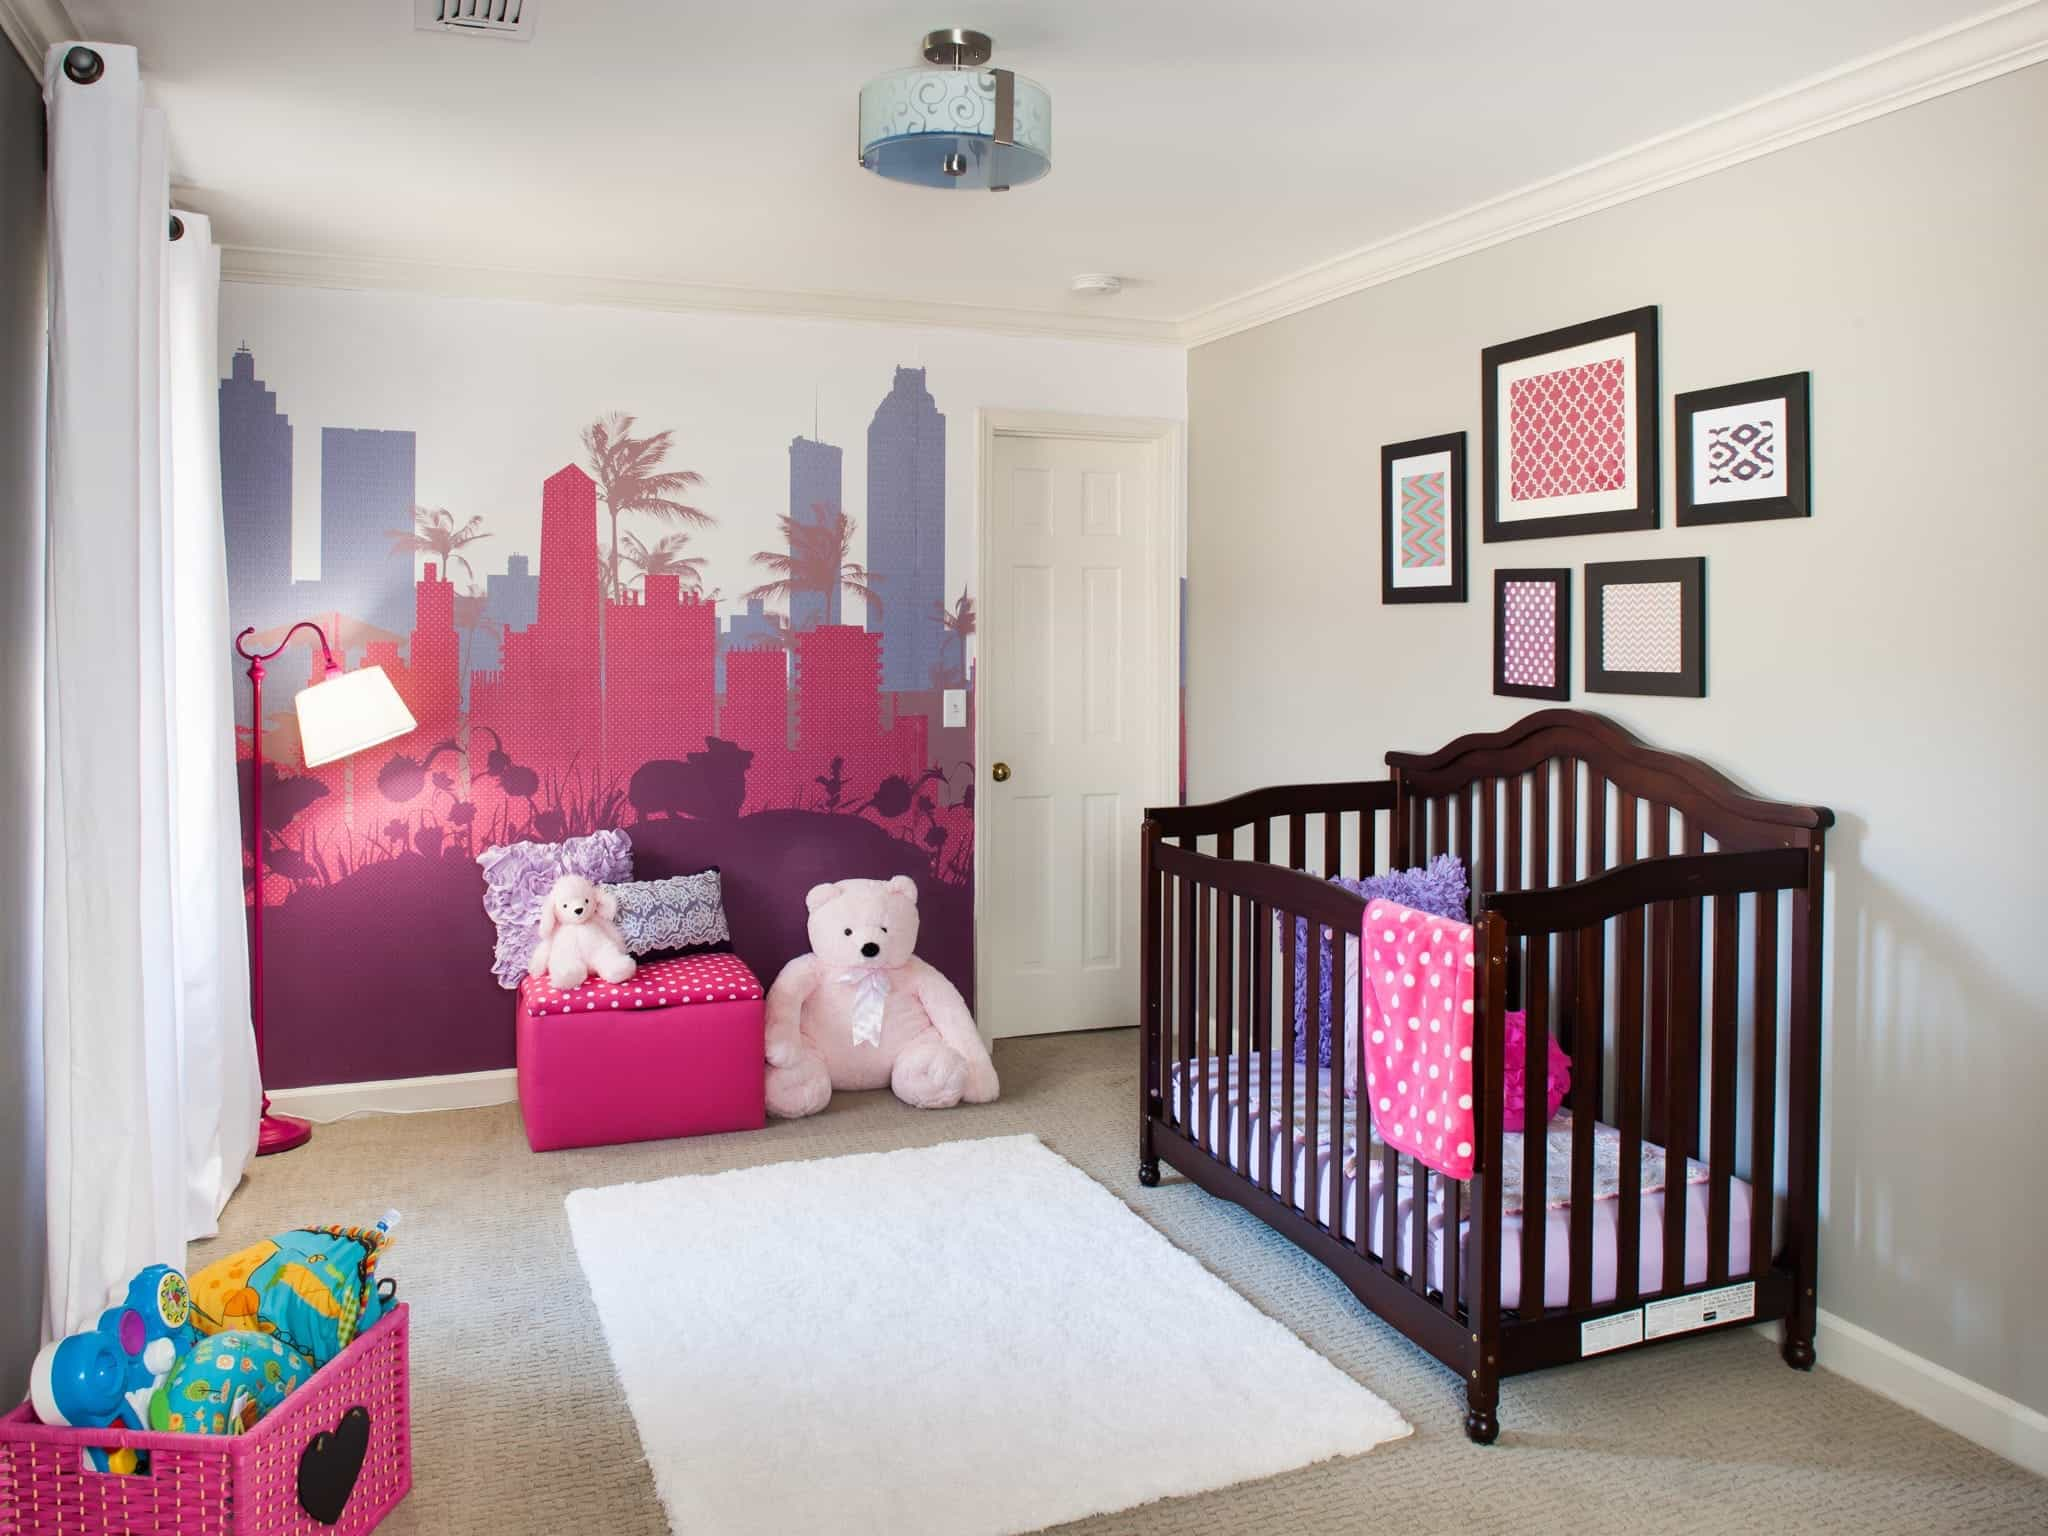 Minimalist City Girl Nursery Baby Room Decor (Image 14 of 33)